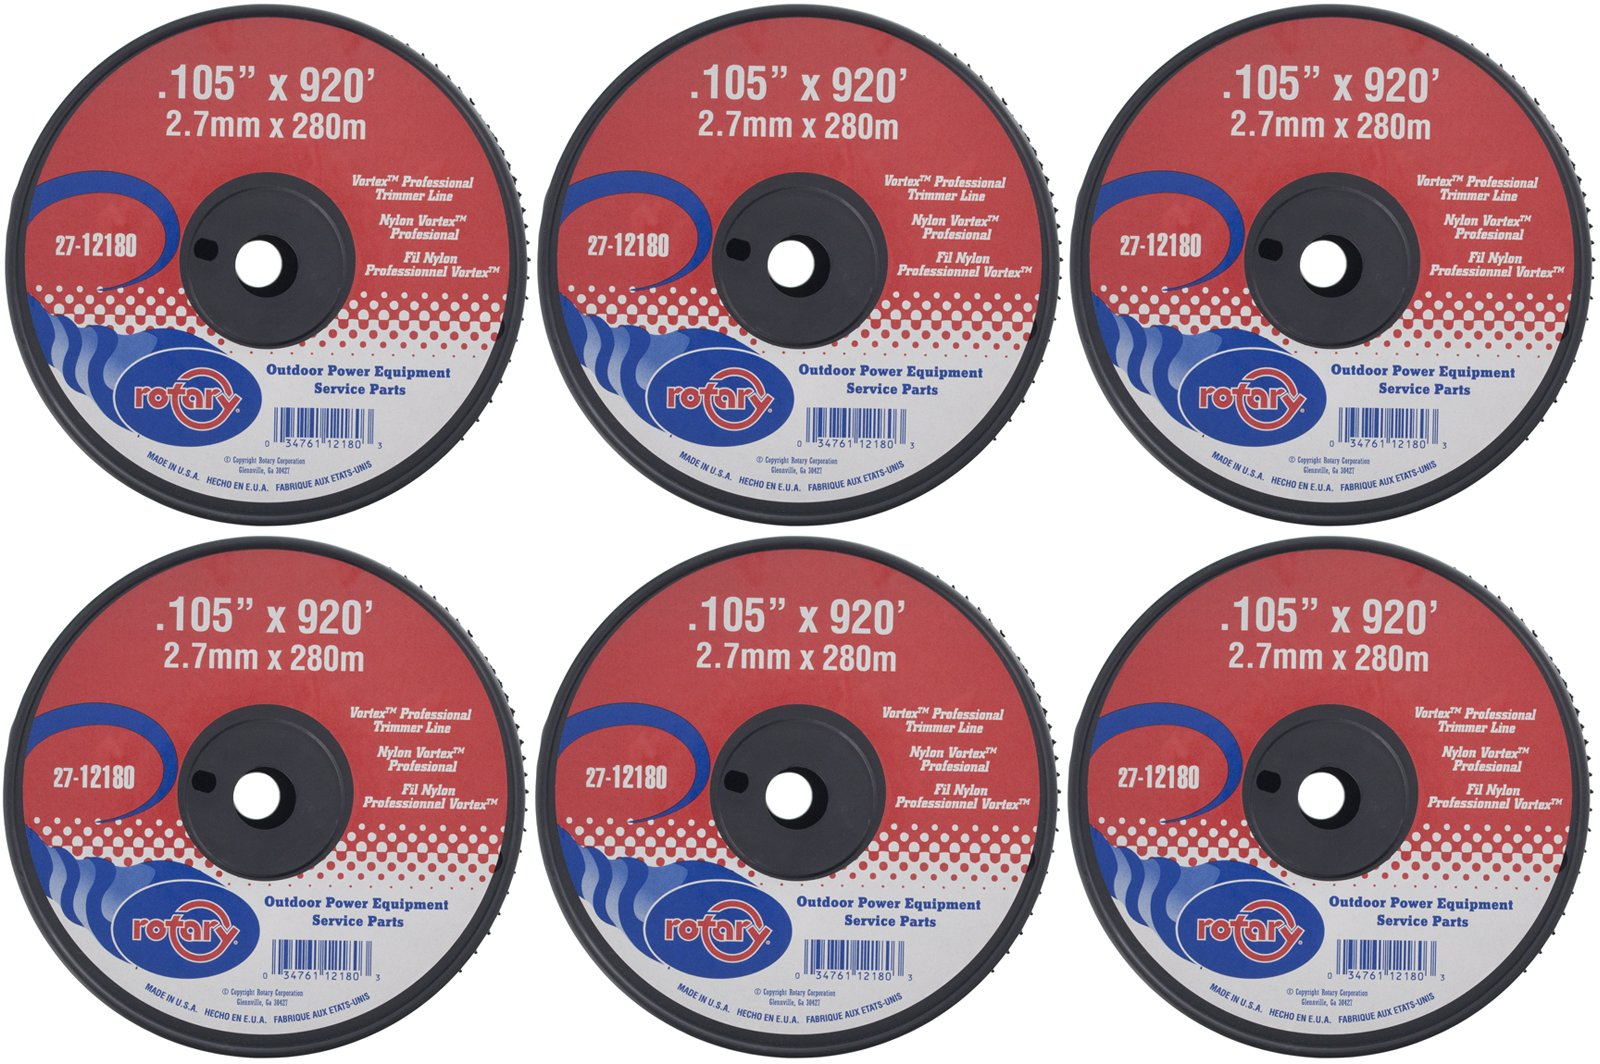 Rotary Six (6) Pack of Vortex Trimmer Line 12180 .105 x 920 5 LBS Spools